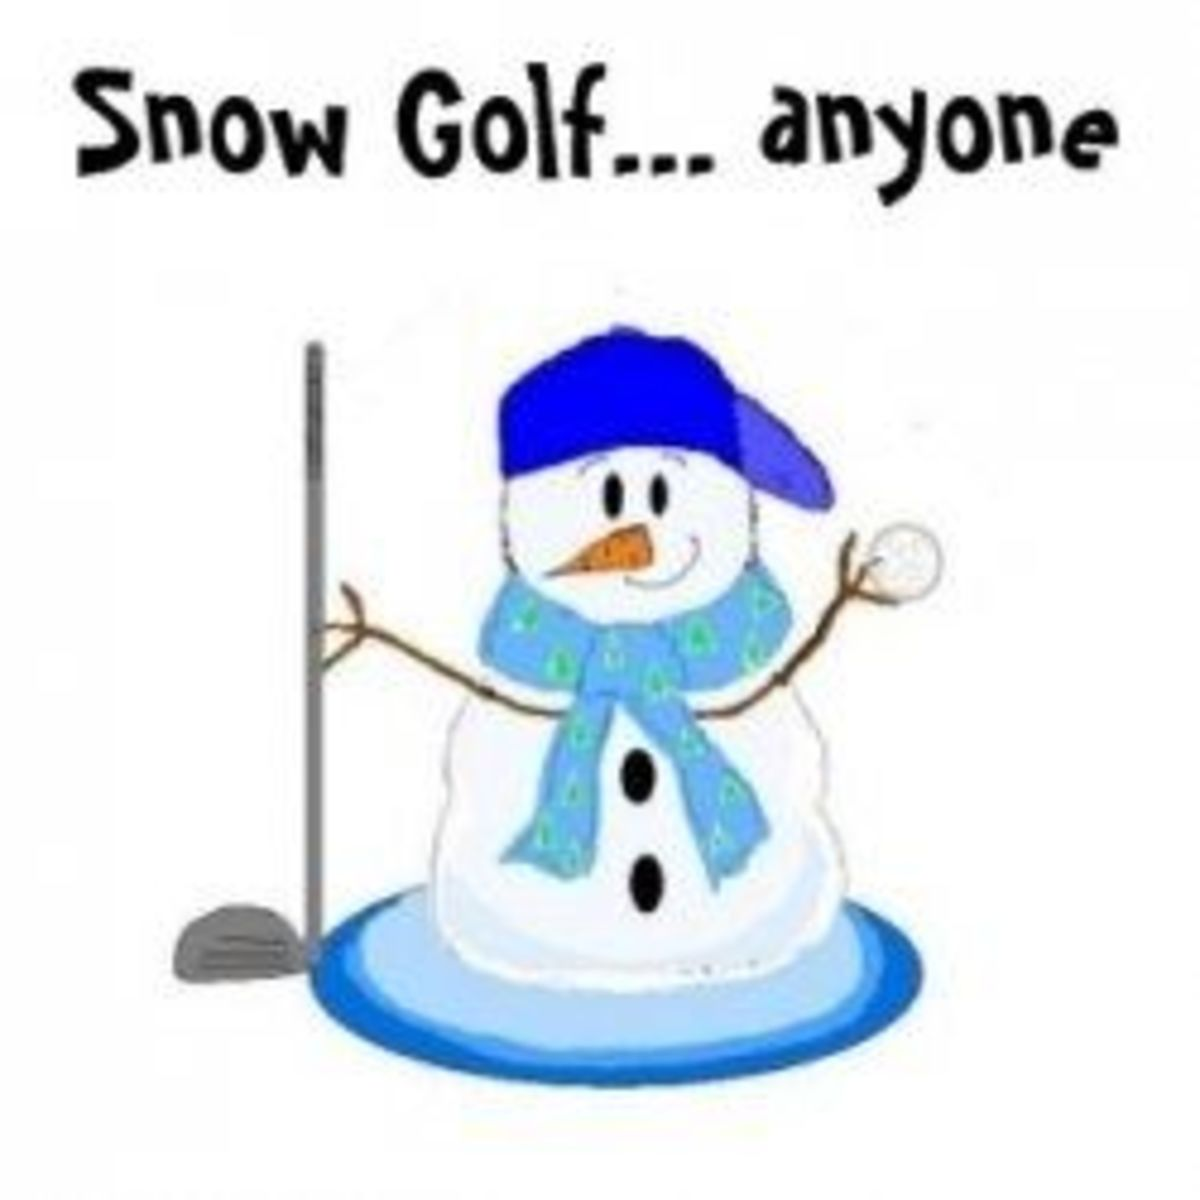 I have to smile at this. I actually know someone who plays golf in the snow.